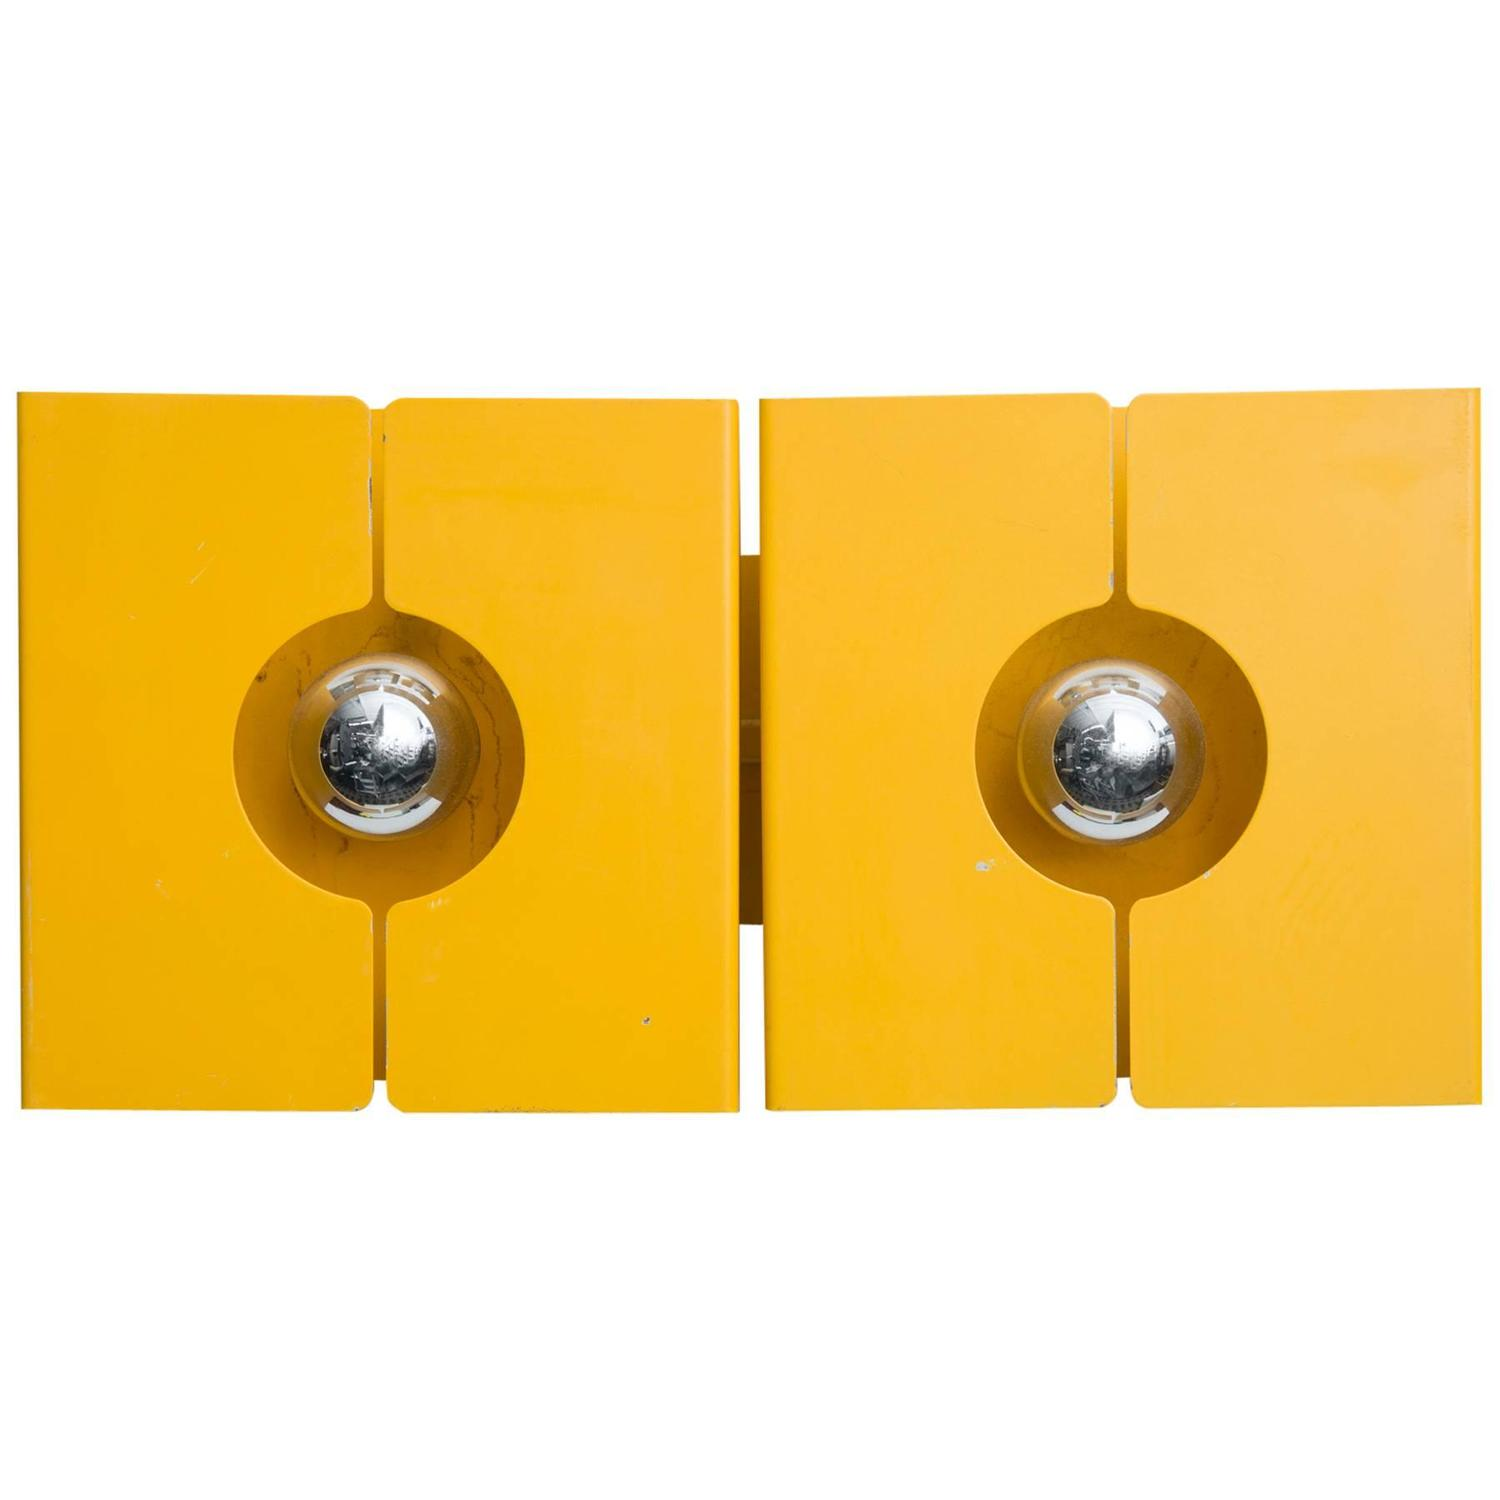 Mod Double Yellow Metal 1970s Wall Sconce from La Pagne Ski Resort, France at 1stdibs